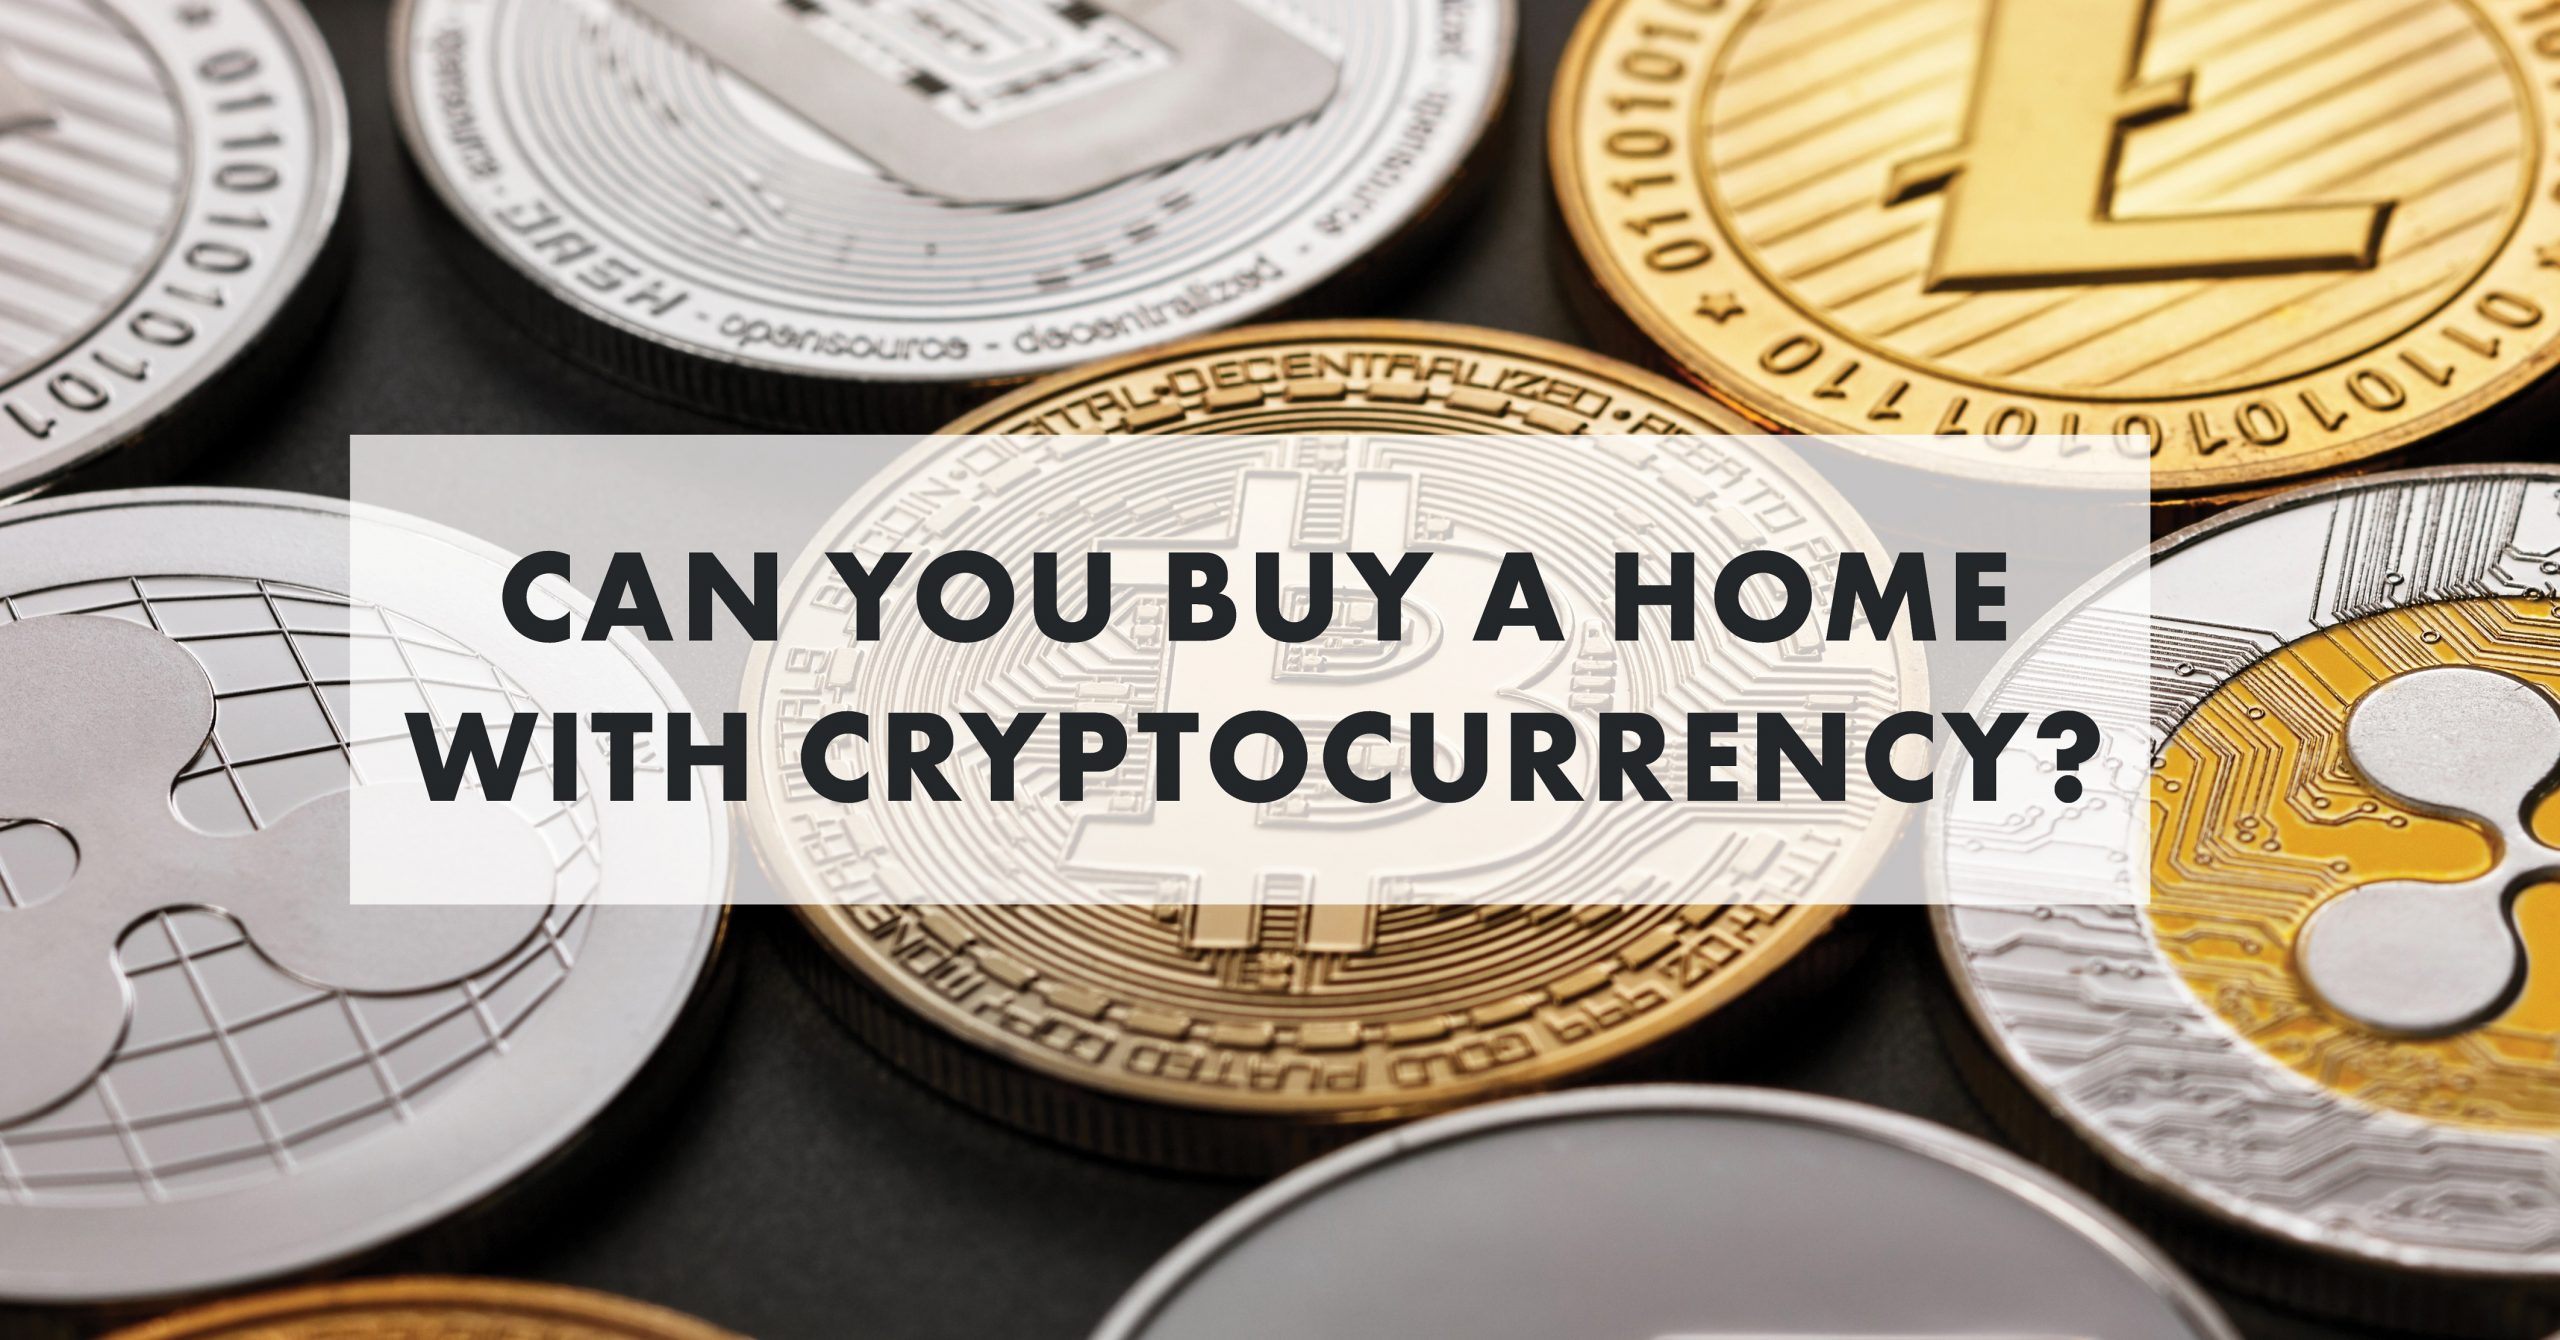 Can You Buy a Home with Cryptocurrency - Blog Image